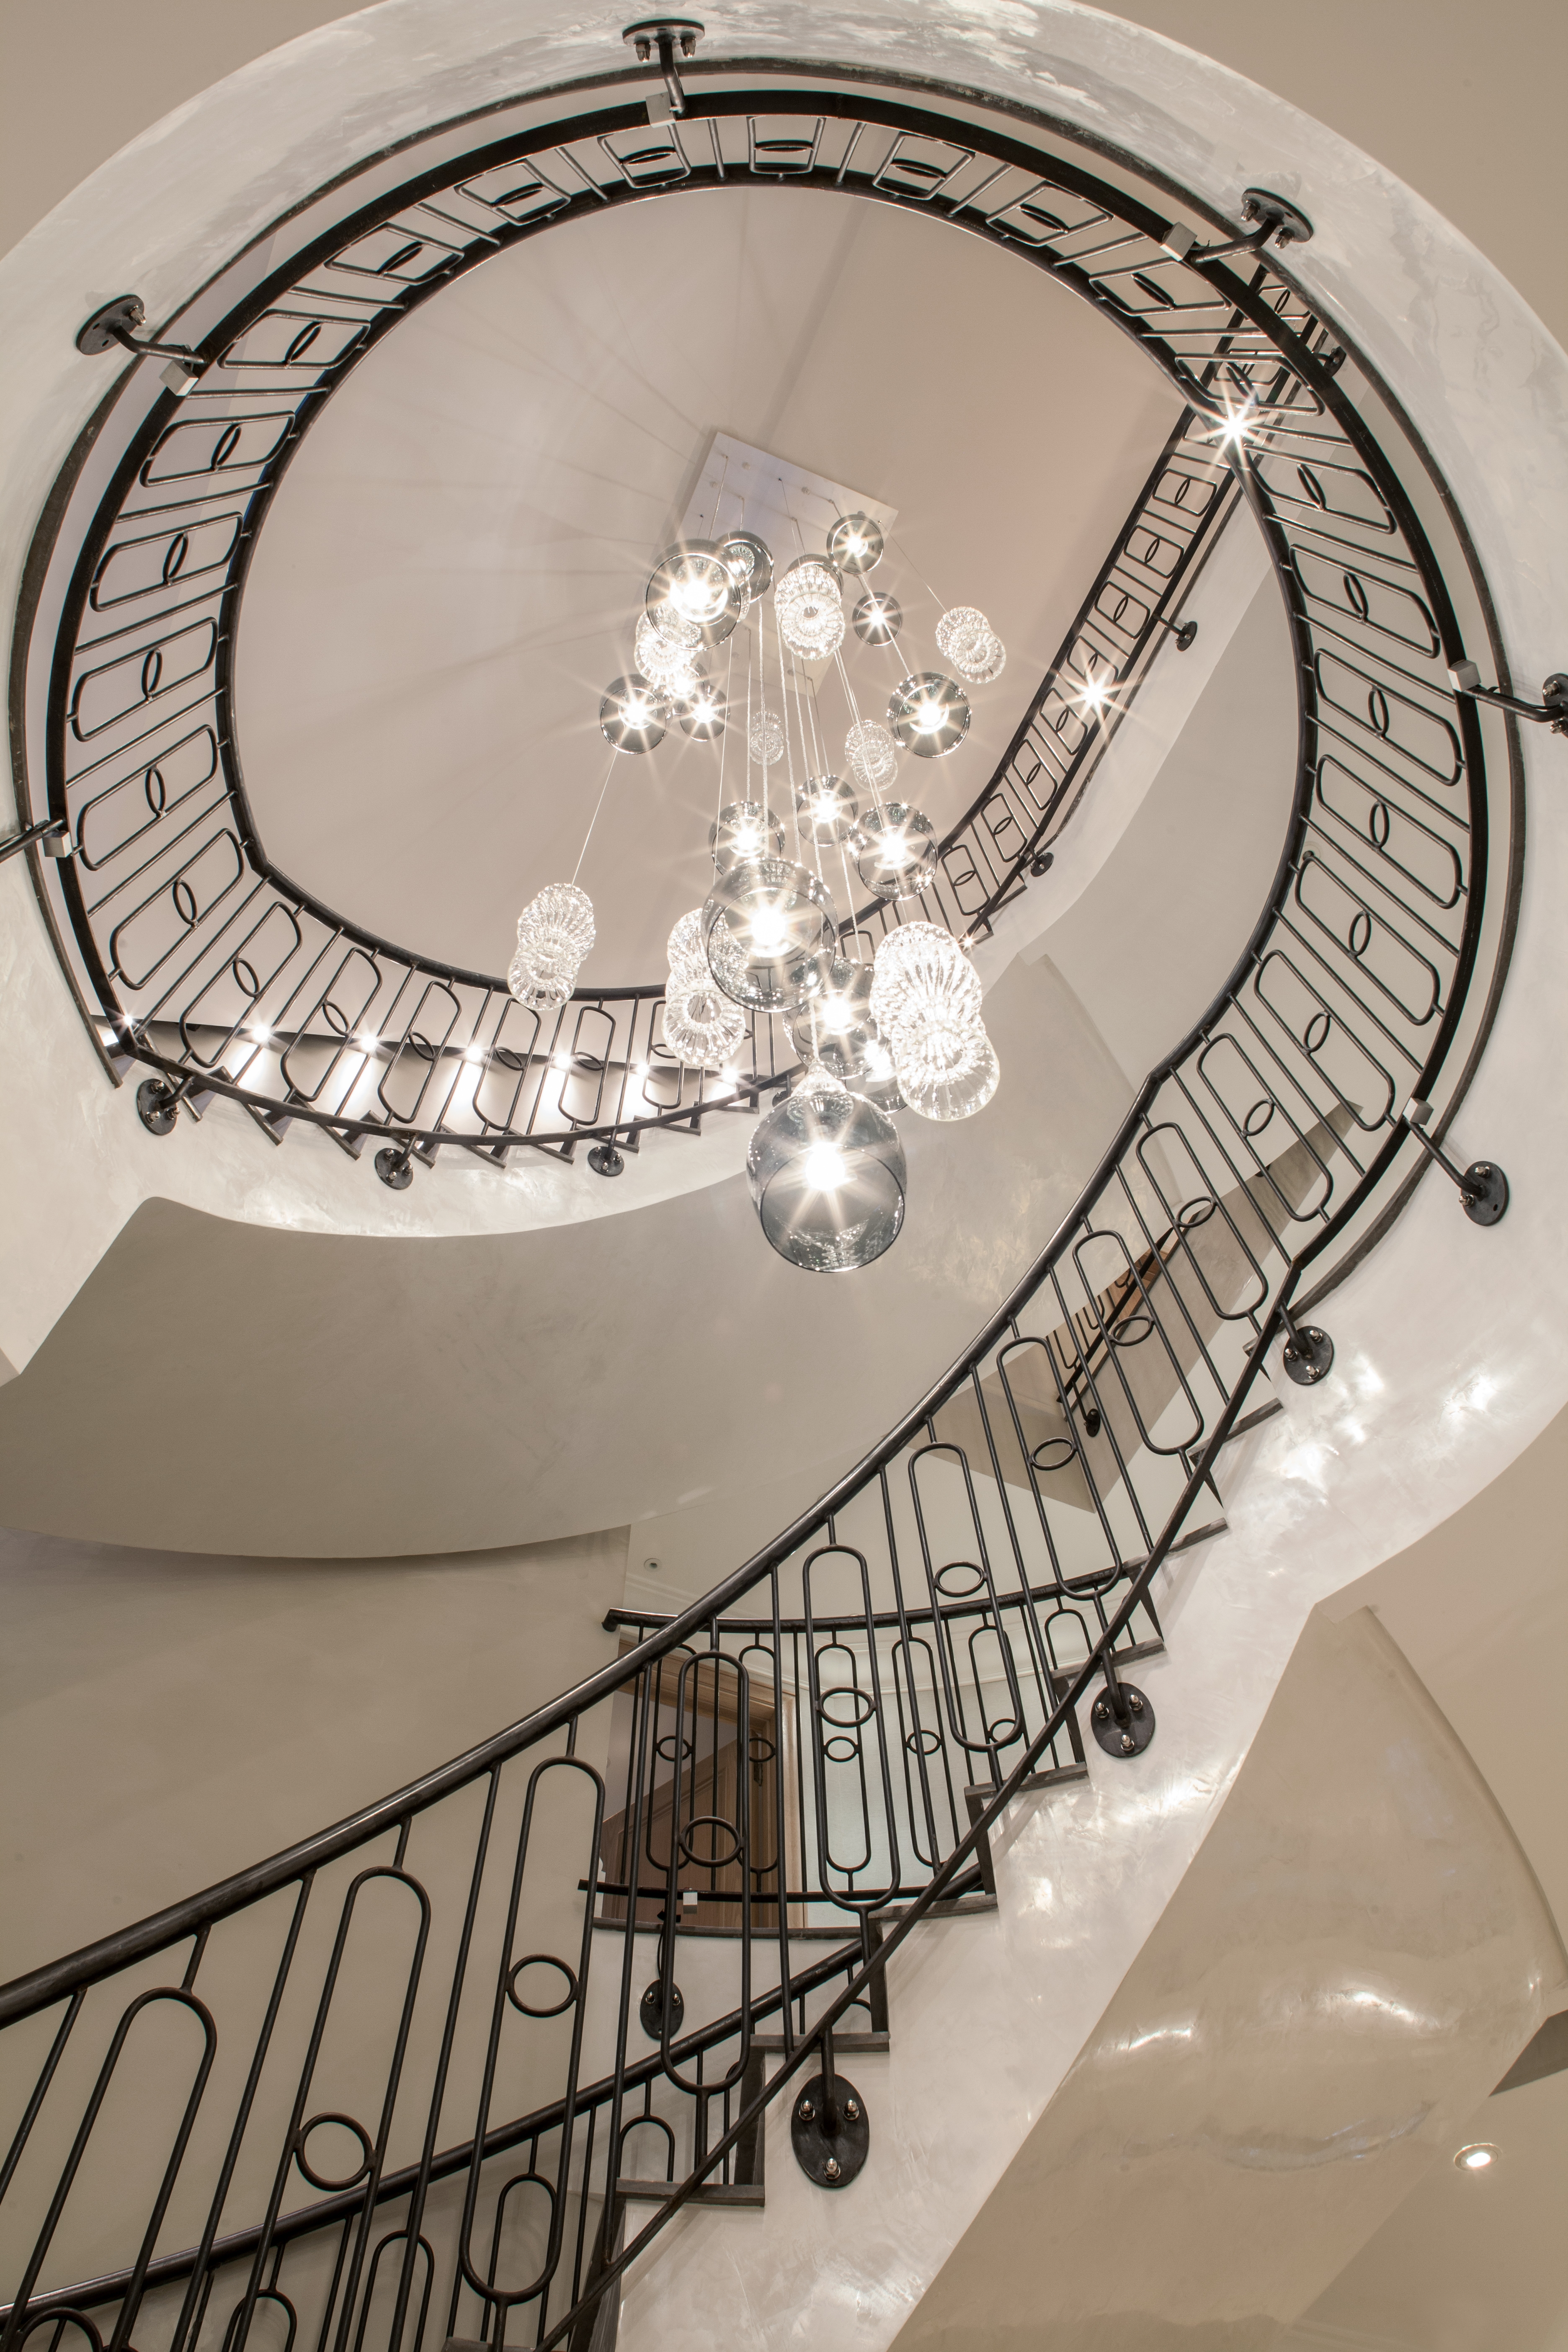 Download Images In Situ Rothschild Bickers For Stairway Chandeliers (#8 of 12)